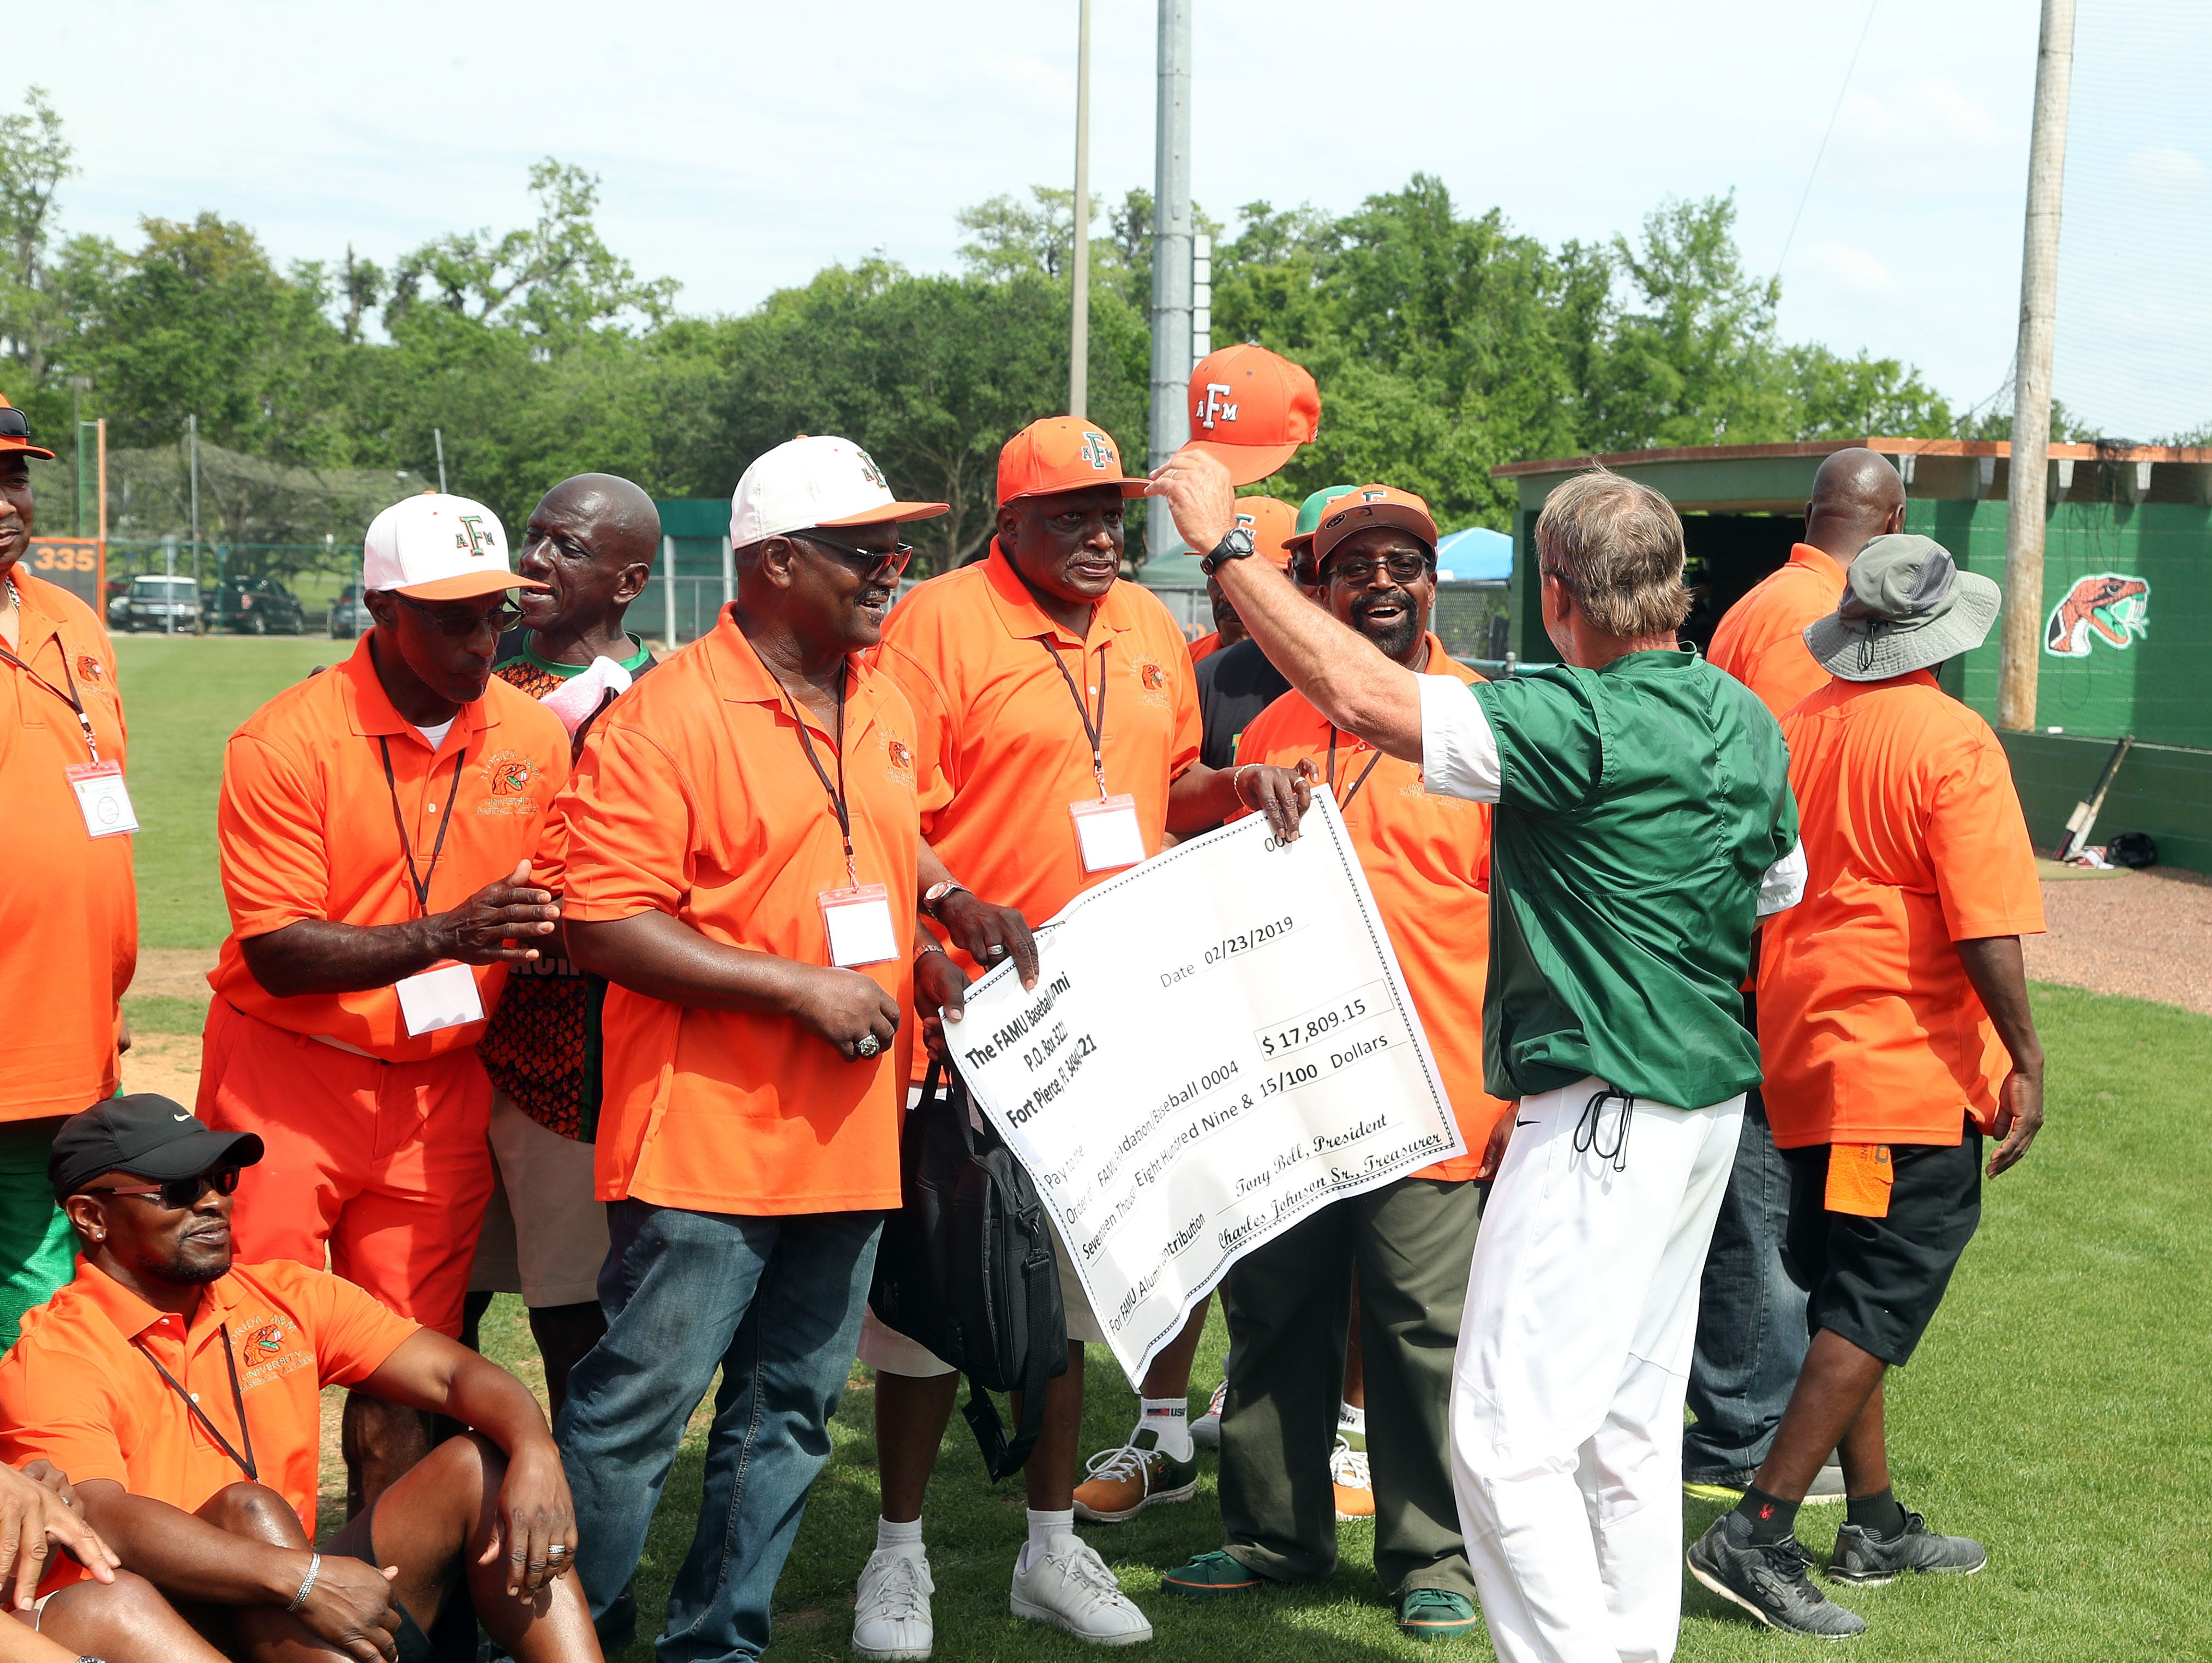 Head coach Jamey Shouppe thanks the FAMU Baseball Alumni Association for raising funds for his team.